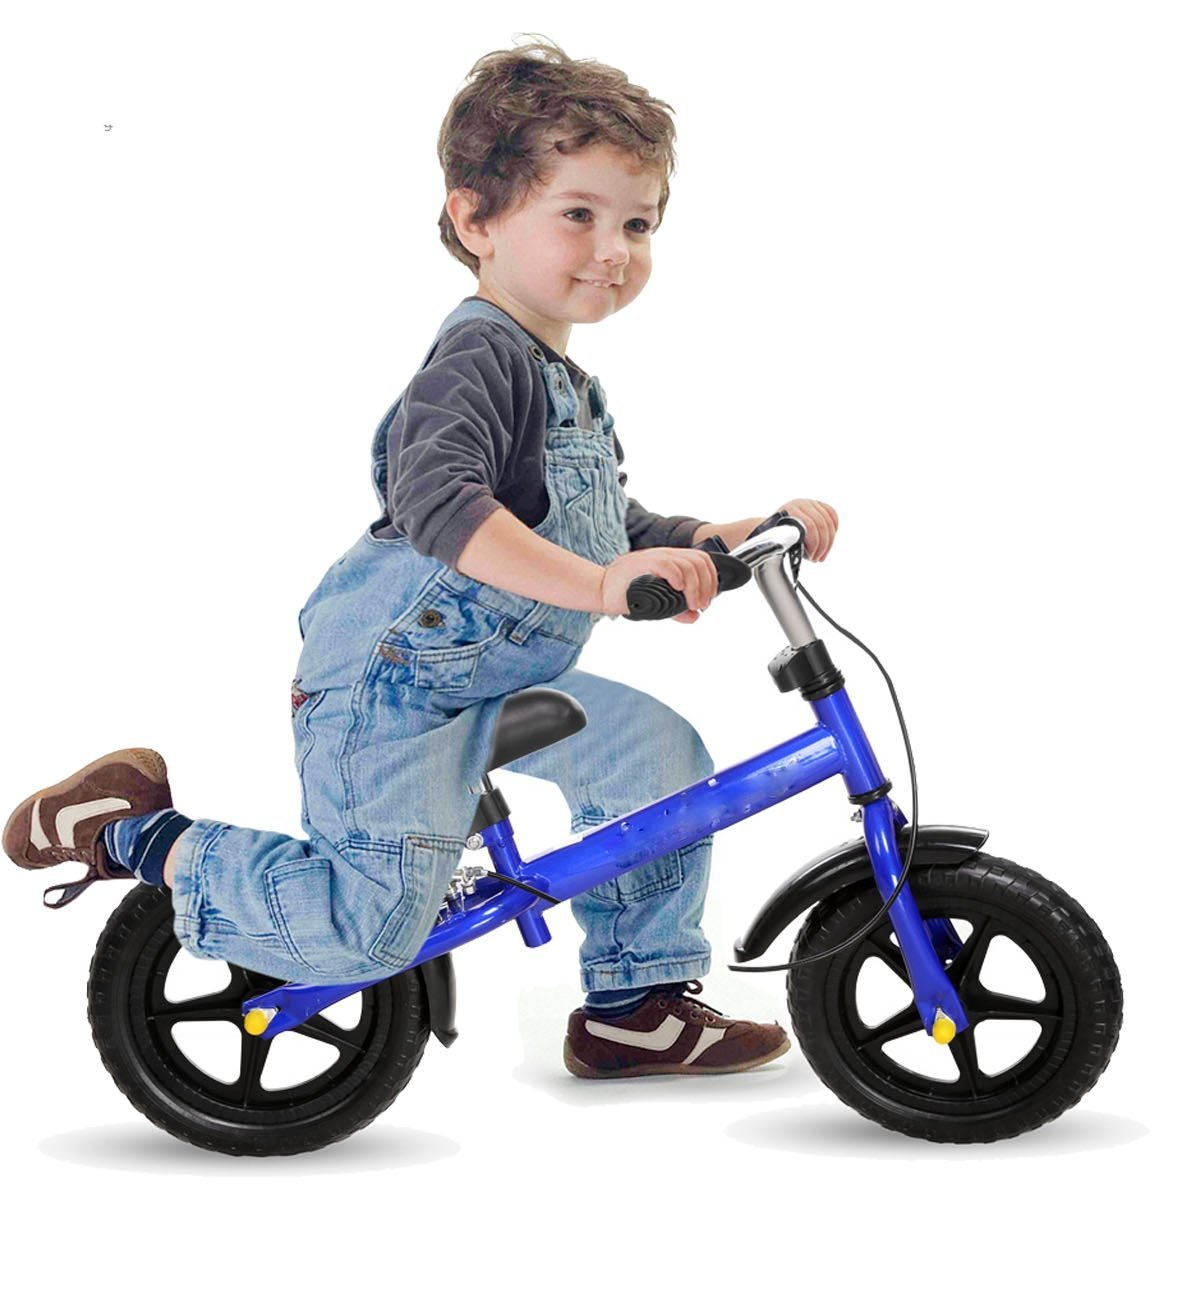 Kid's Bike, Boy's Bike, Girl's Bike Balance Bike, Running Bike, Push Bike, No Pedal Bike